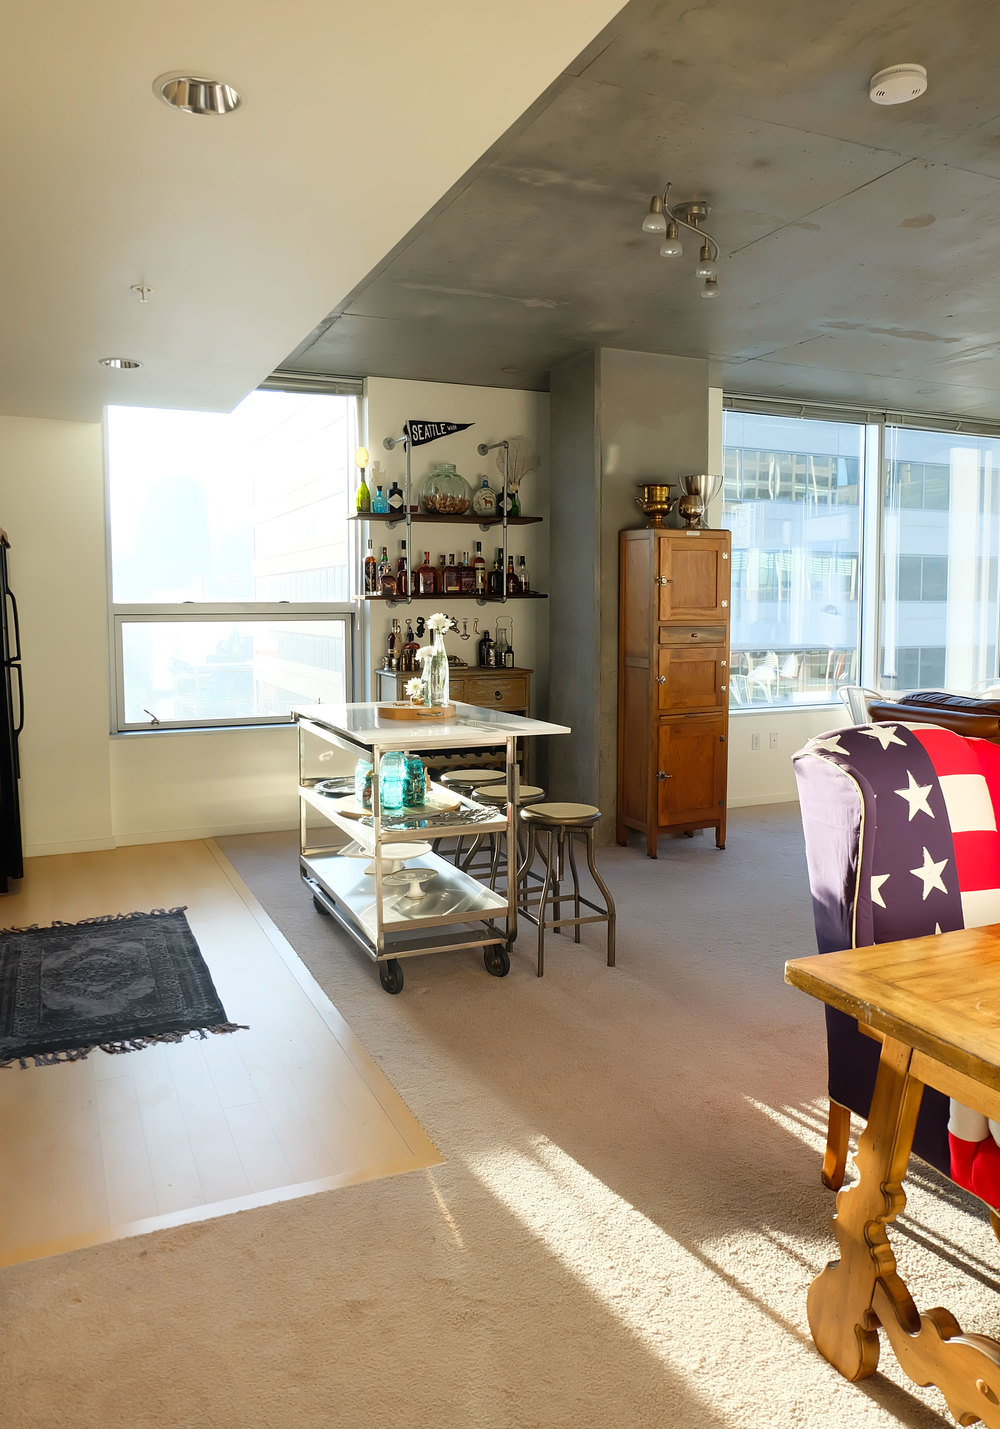 DIY Faux Carrara Marble Countertop, DIY Kitchen Island Cart, Industrial Loft in Seattle, DIY Bar, American Flag Queen Anne Chair